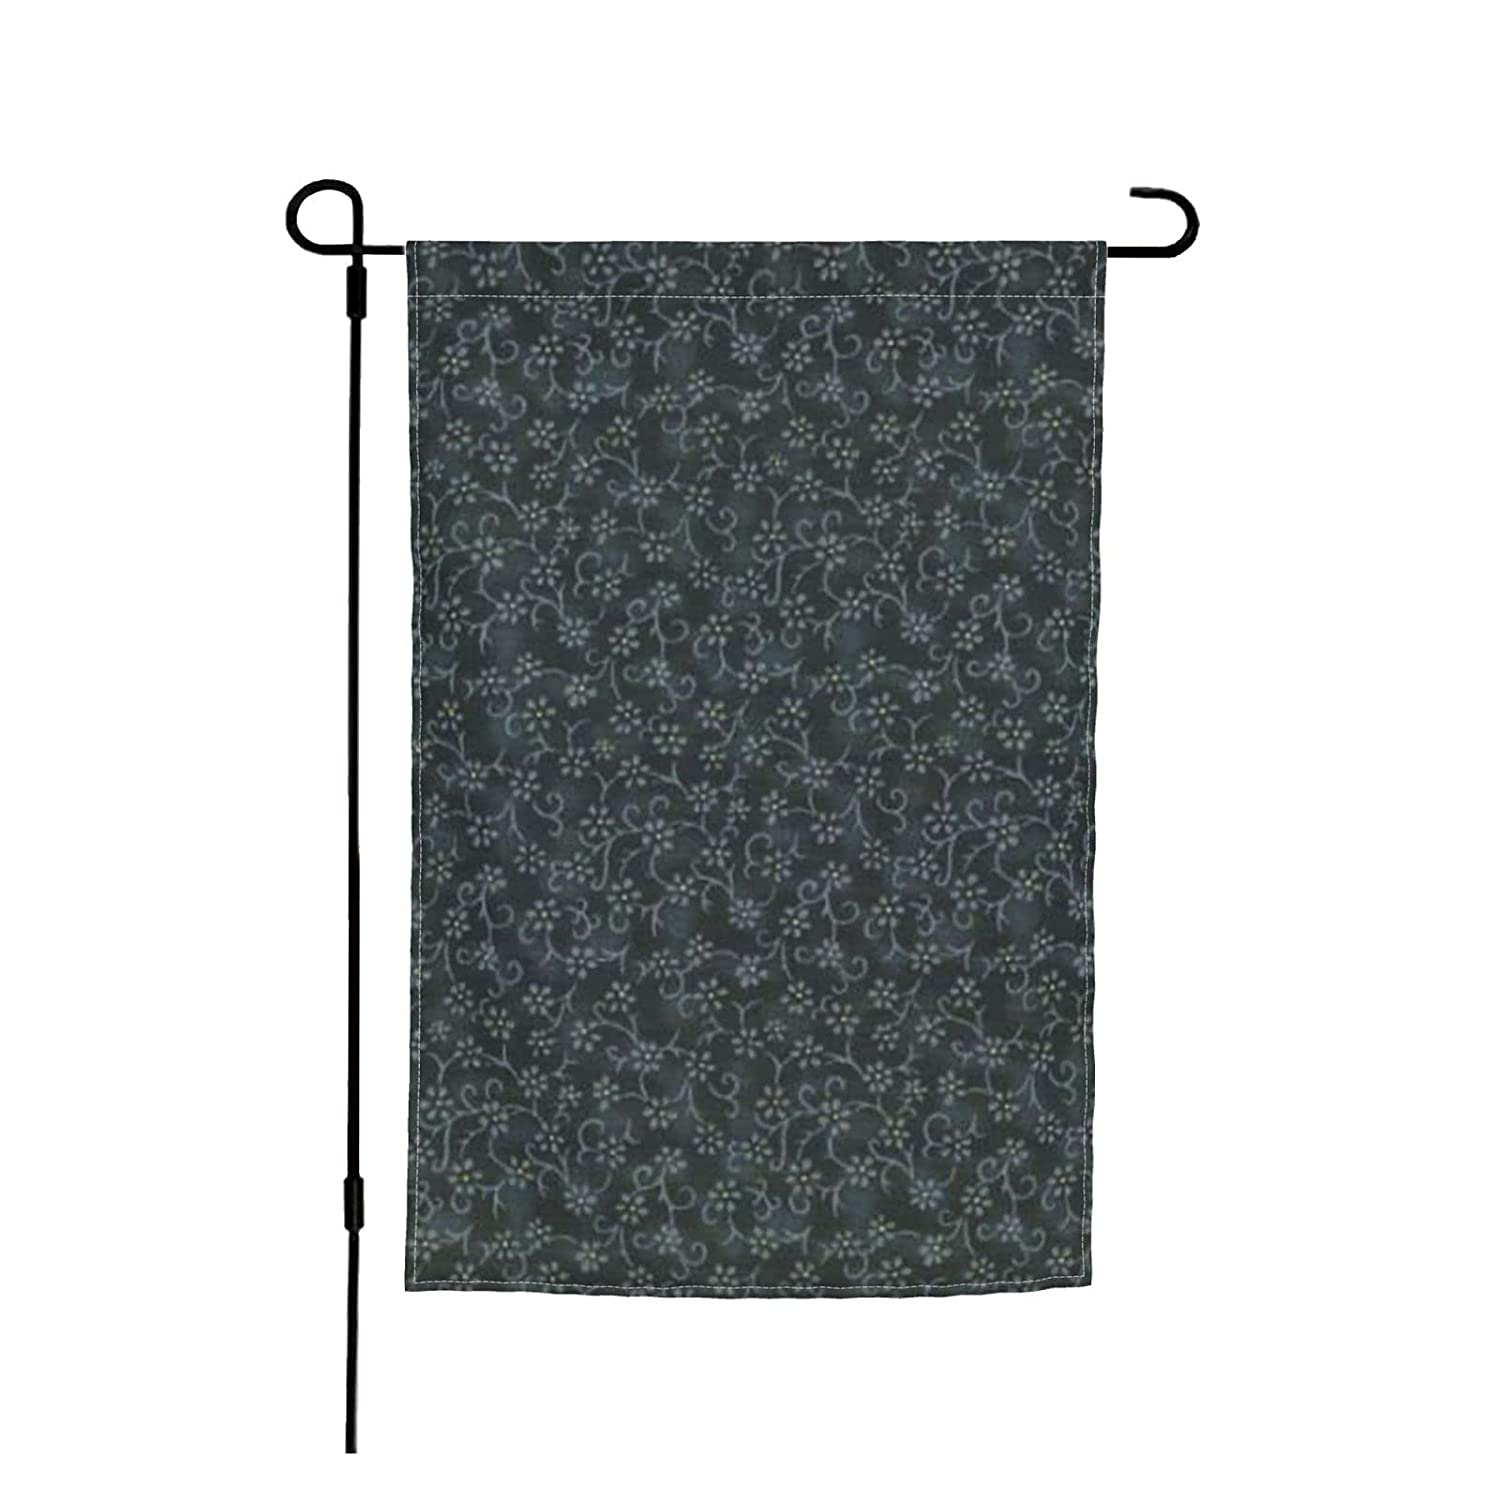 I Refuse To Sink Garden Flag, Double Sided Yard Flags Decorative For Outdoors Holiday All Seasons 12¡Á18 Inch